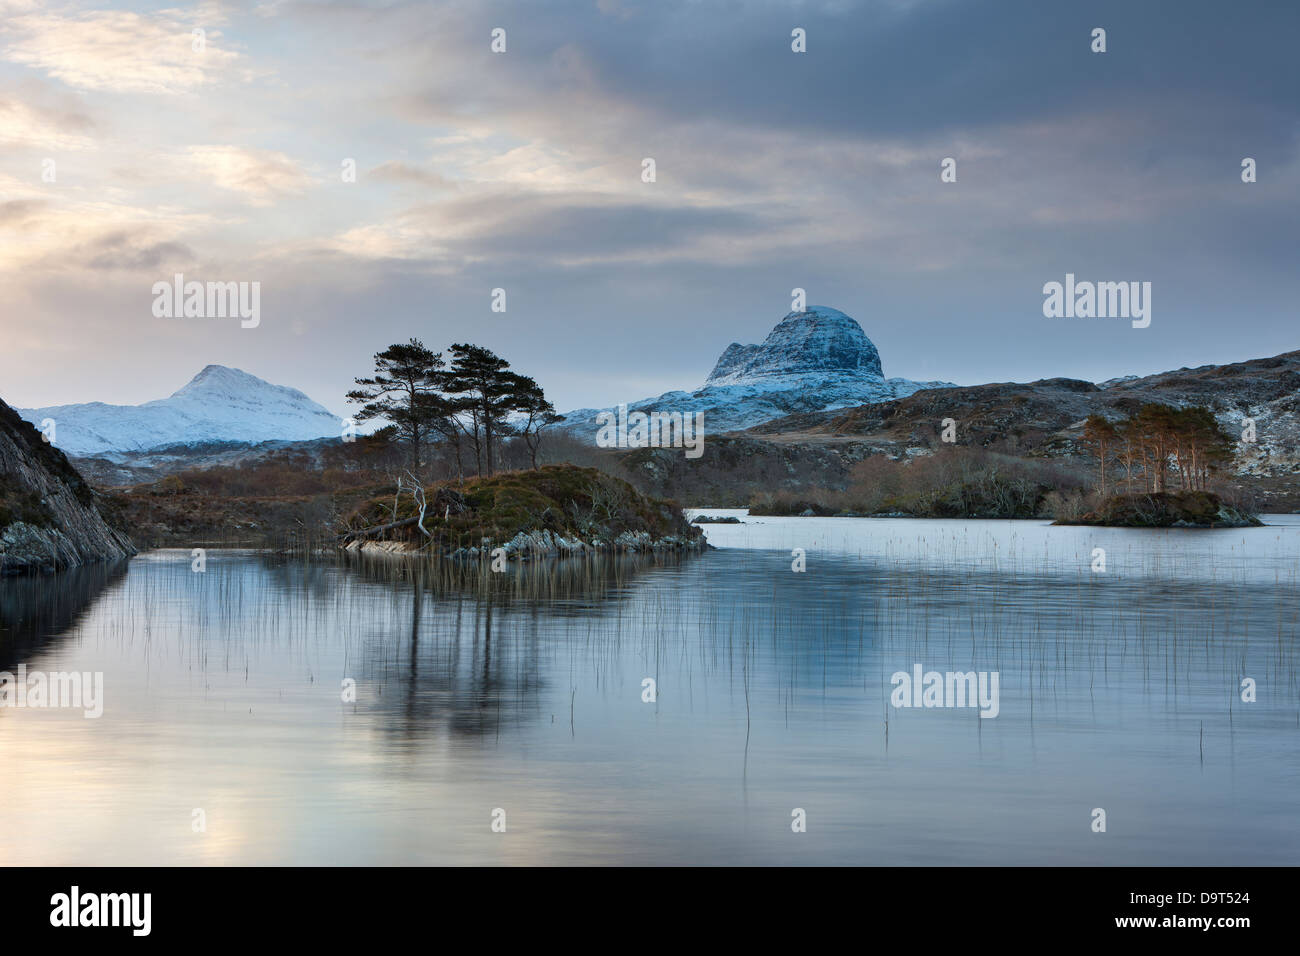 Loch Druim Suardalain with Mts Canisp & Suilven dusted in snow, Sutherland, Scotland, UK Stock Photo